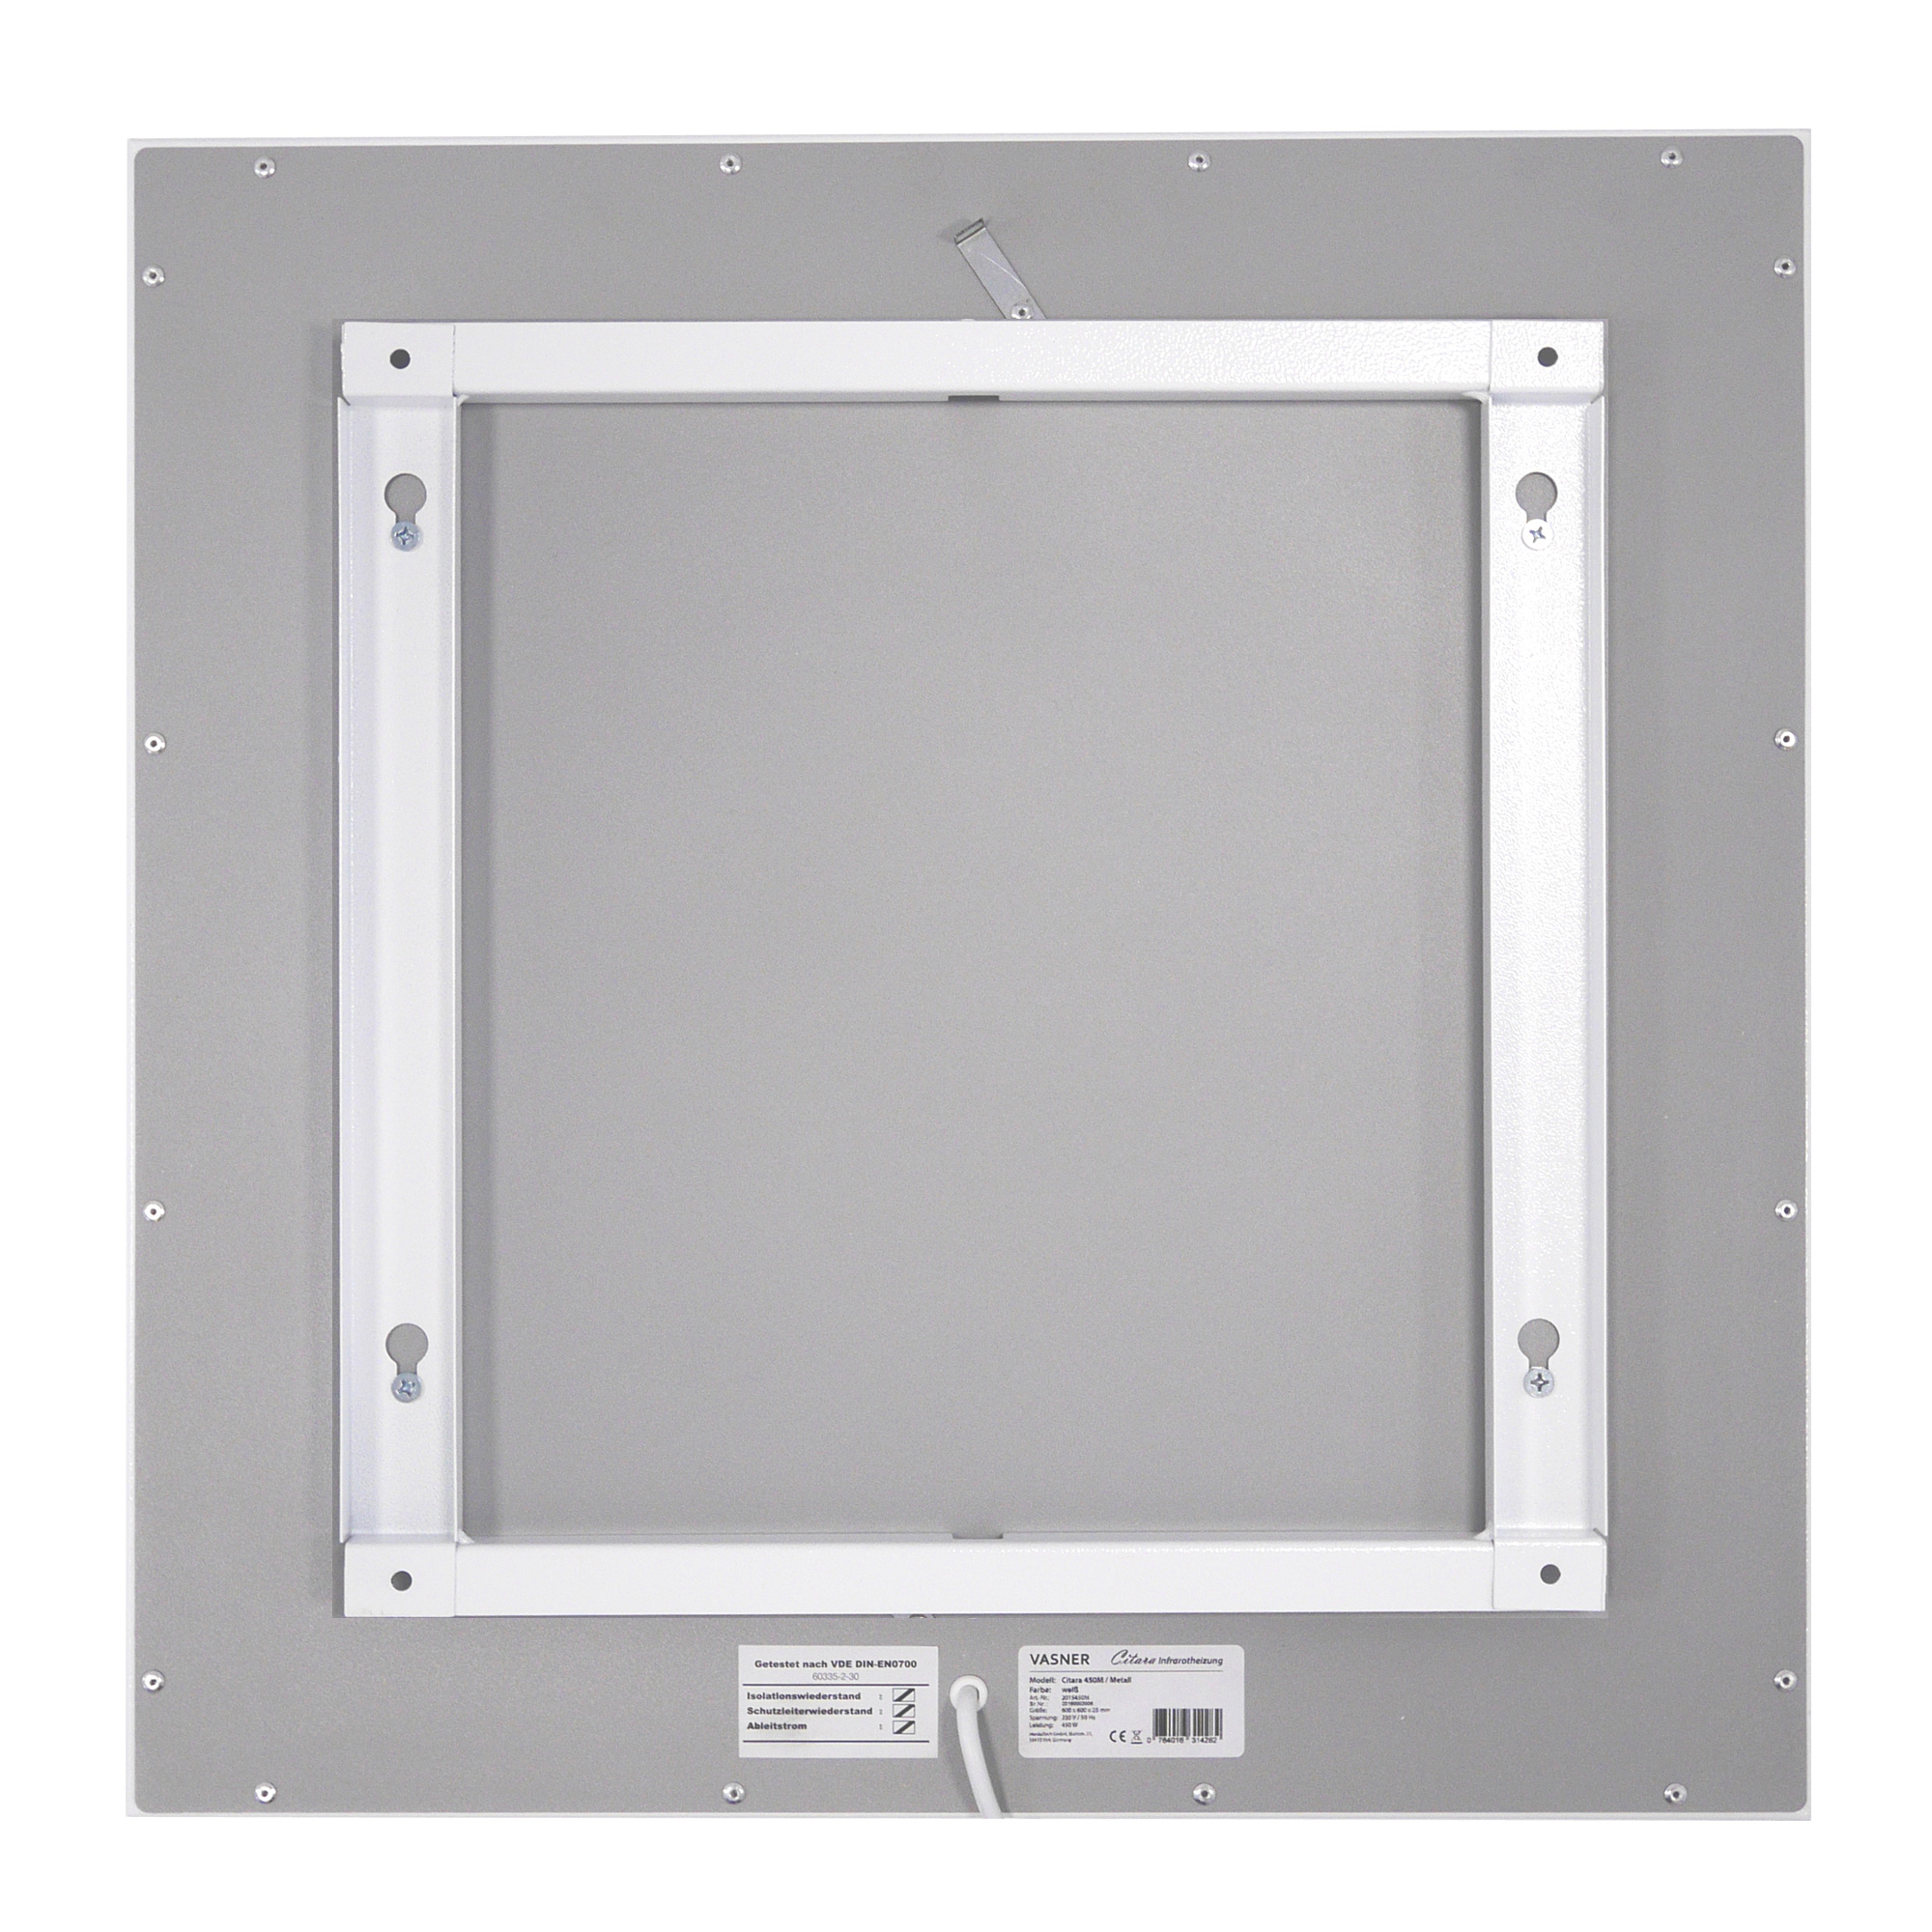 infrared-panel-wall-ceiling-mounting-bracket